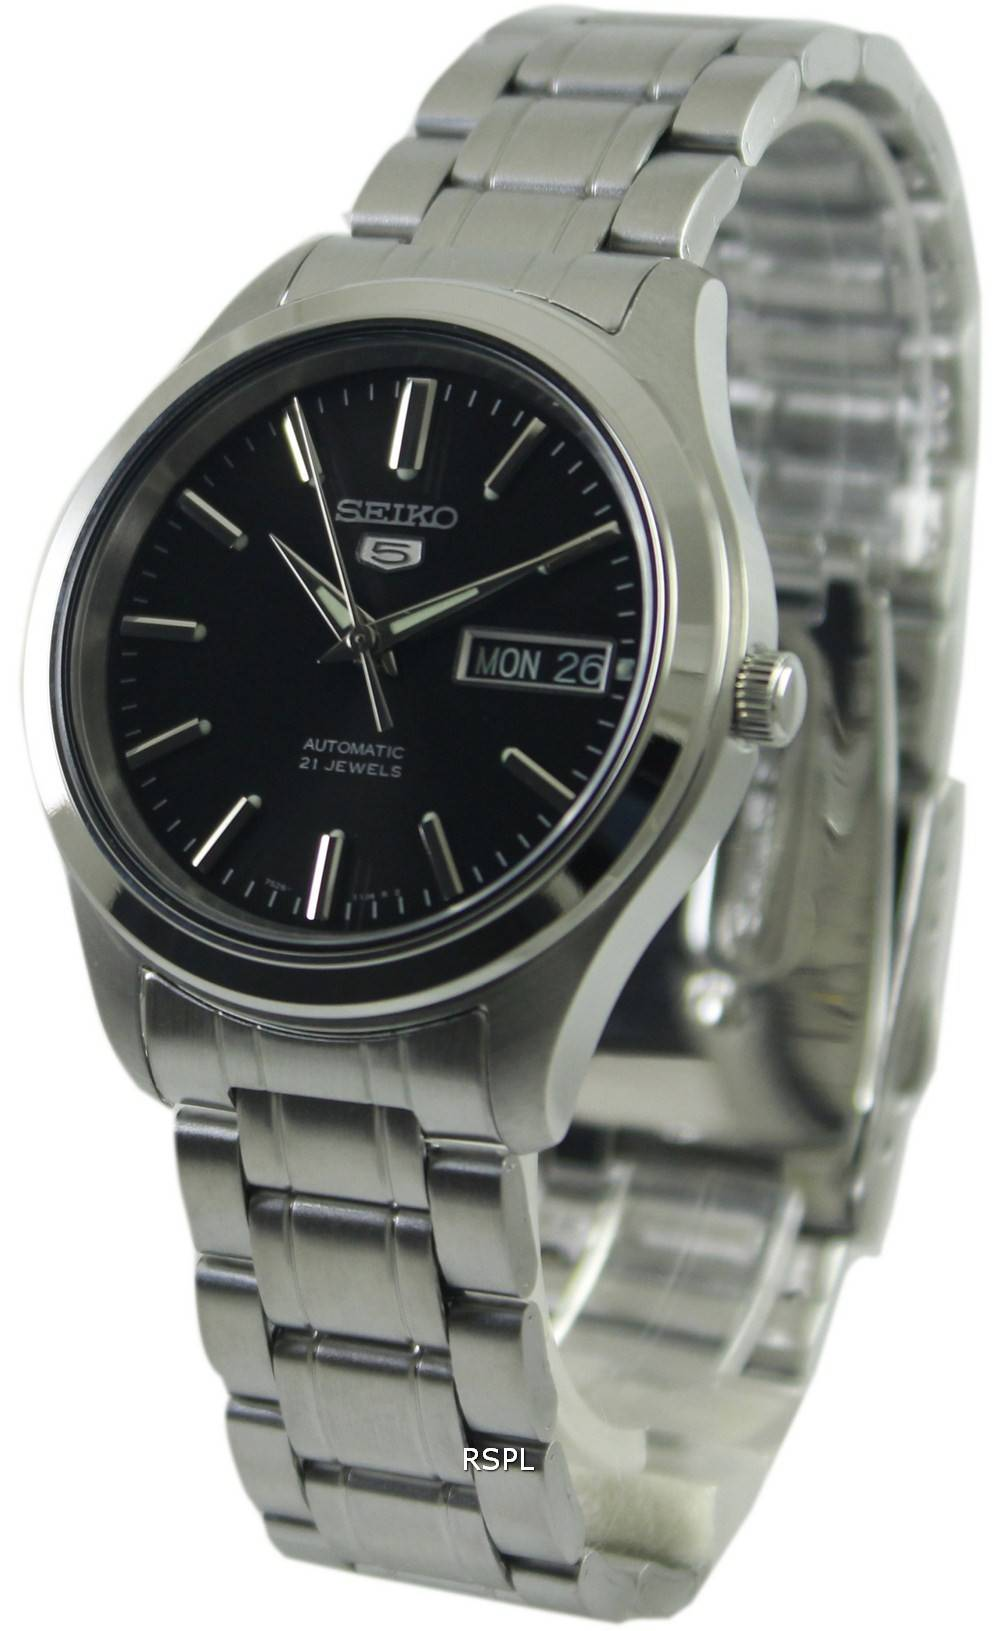 seiko 5 automatic 21 jewels snkm47k1 snkm47k mens watch